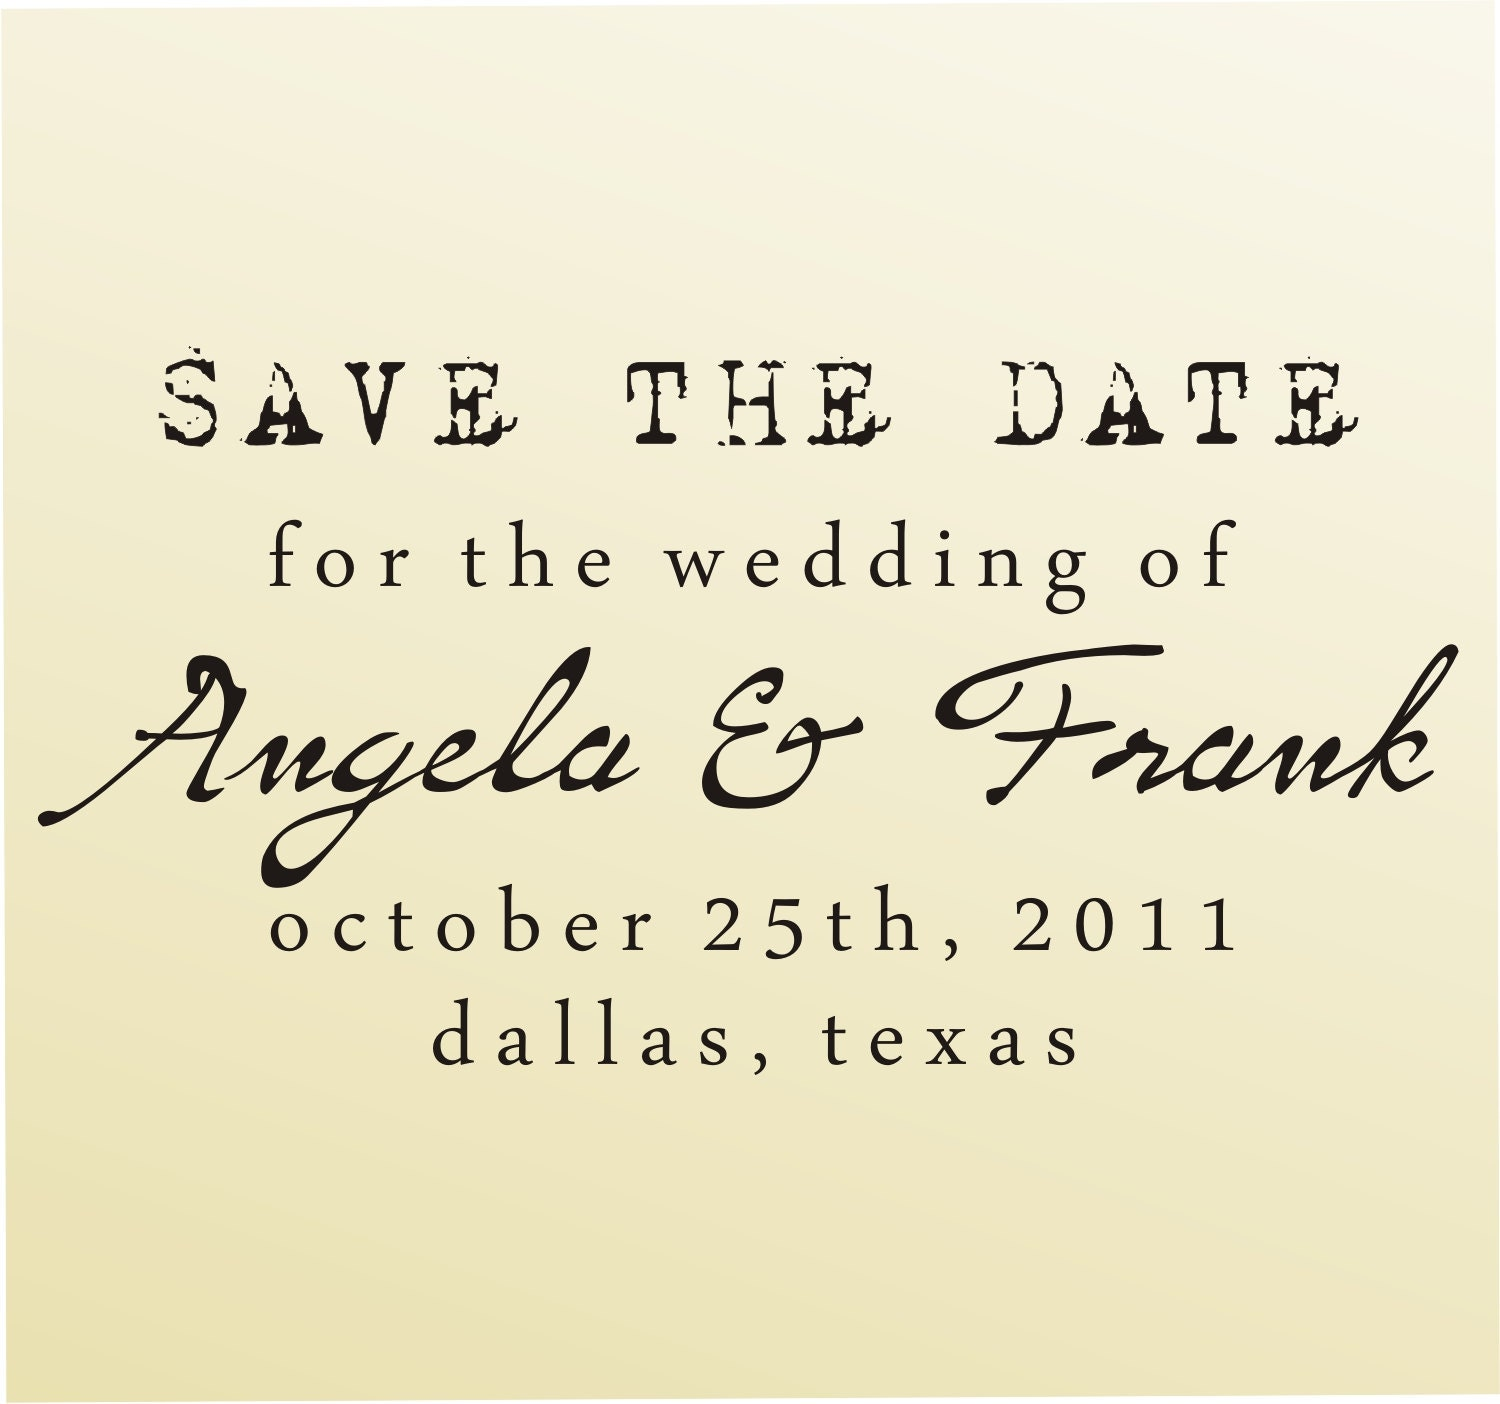 SAVE THE DATE vintage design typewriter font rubber stamp clear block mounted -style 6011  - custom wedding stationary